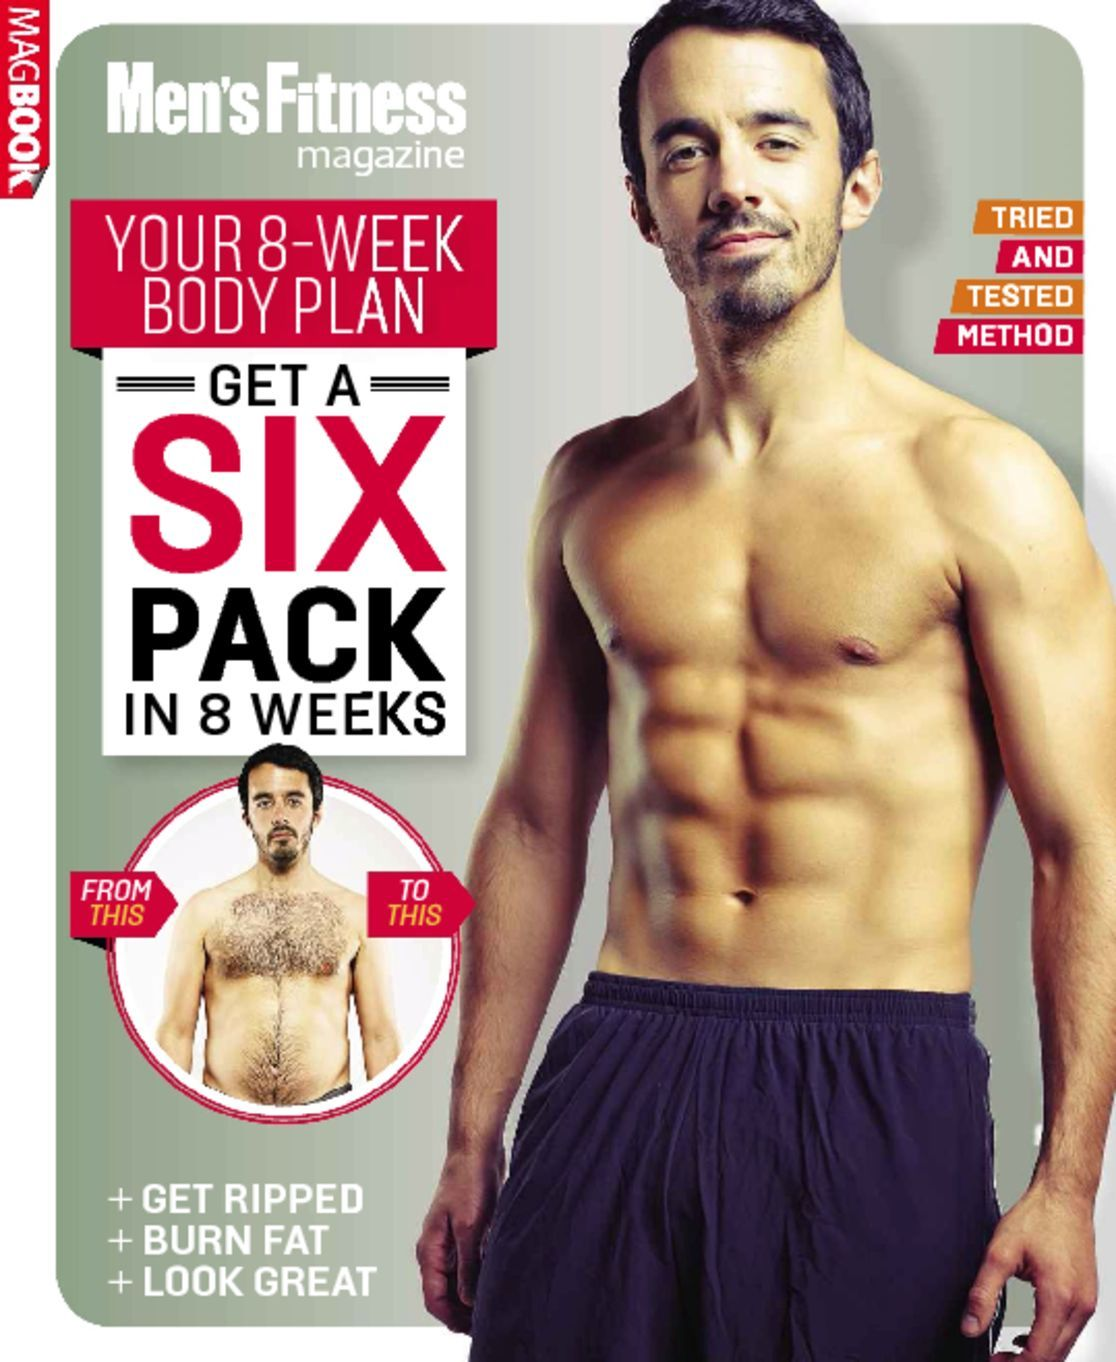 Men's Fitness Get a Six Pack in 8 Weeks (Digital)